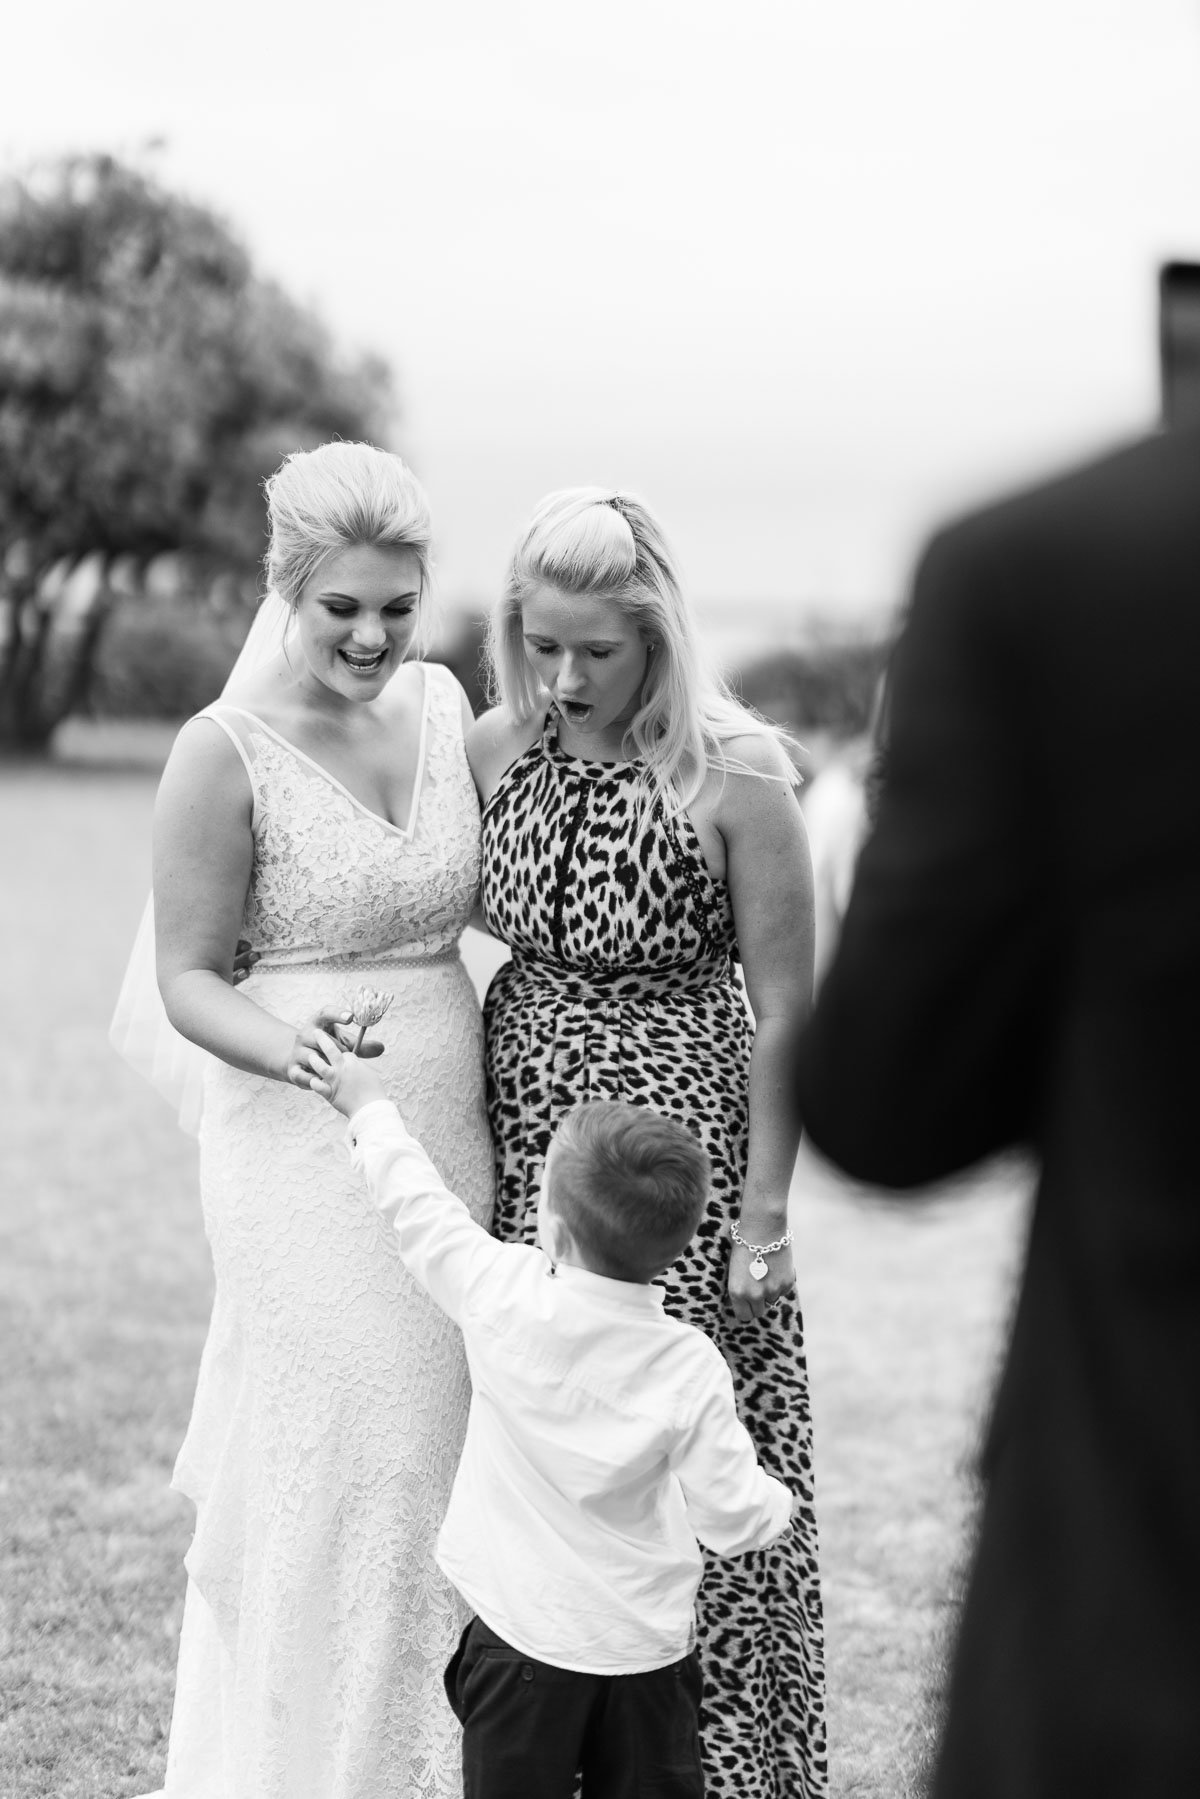 trenavin-chapel-phillip-island-wedding-heart+soul-weddings-sally-sean-01043